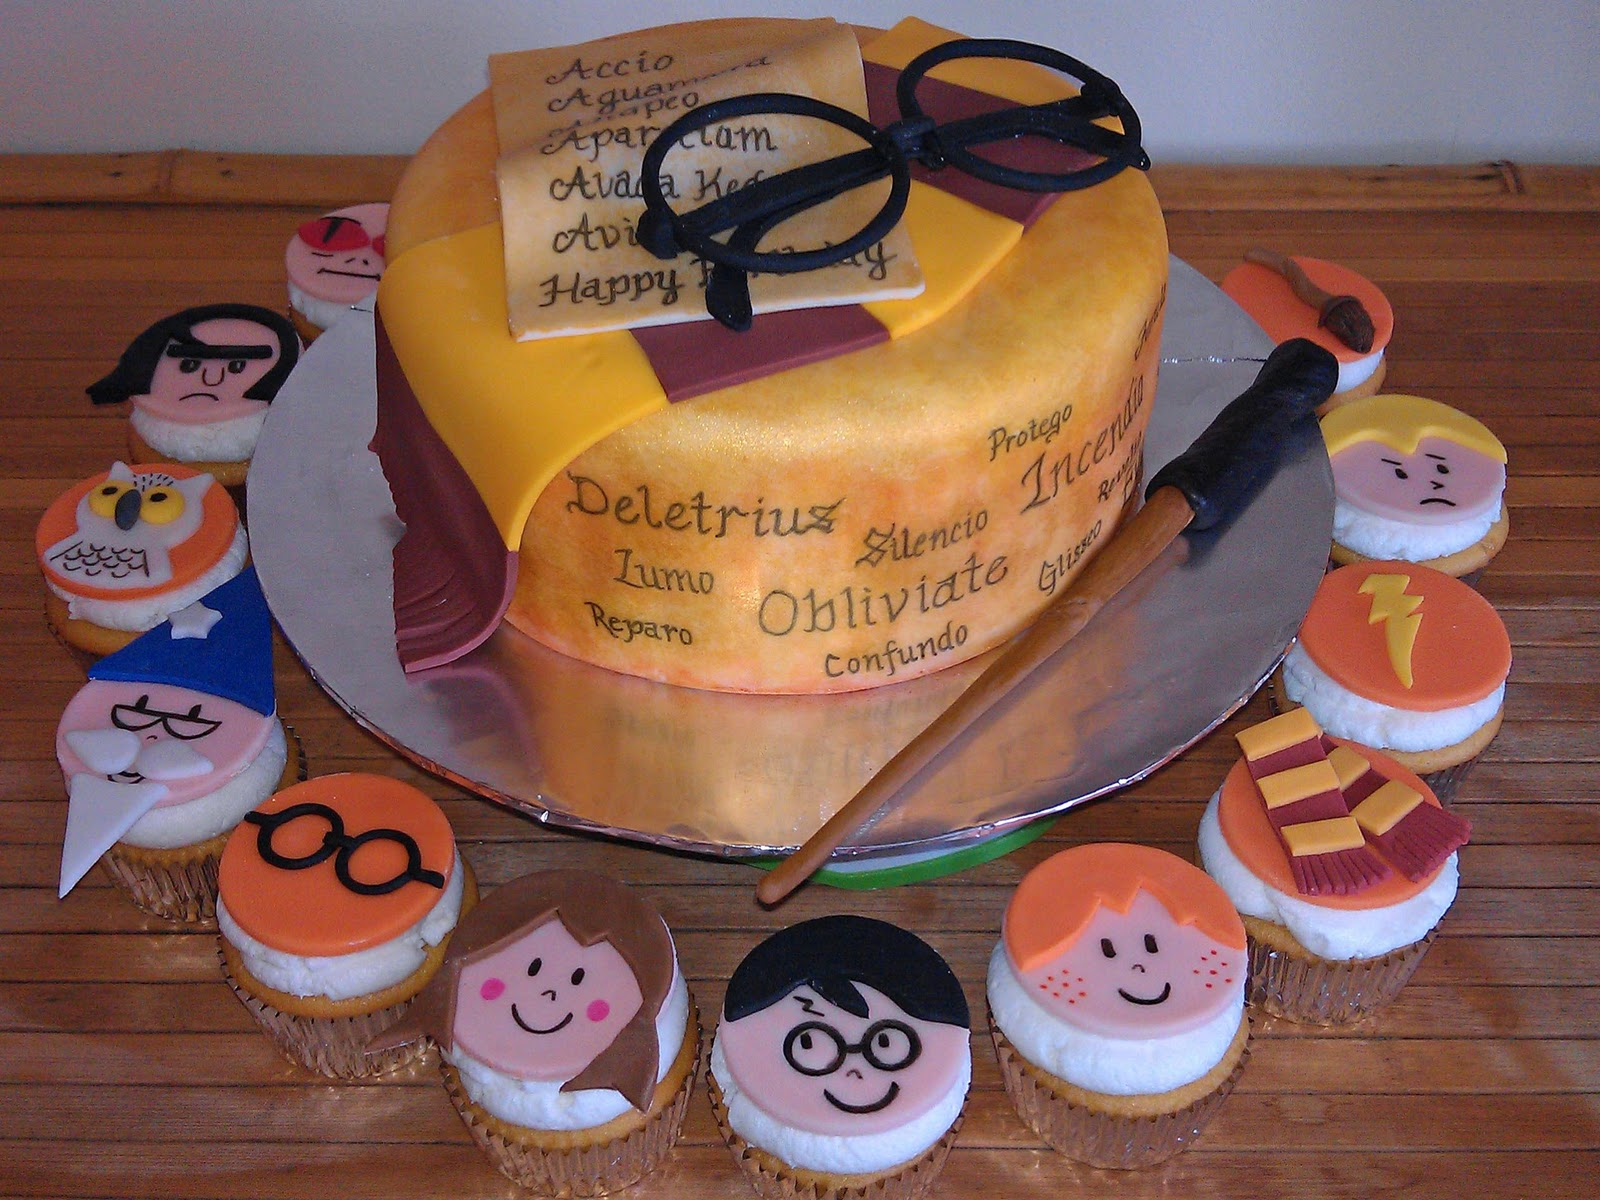 48 Harry Potter Birthday Cakes And Cupcakes